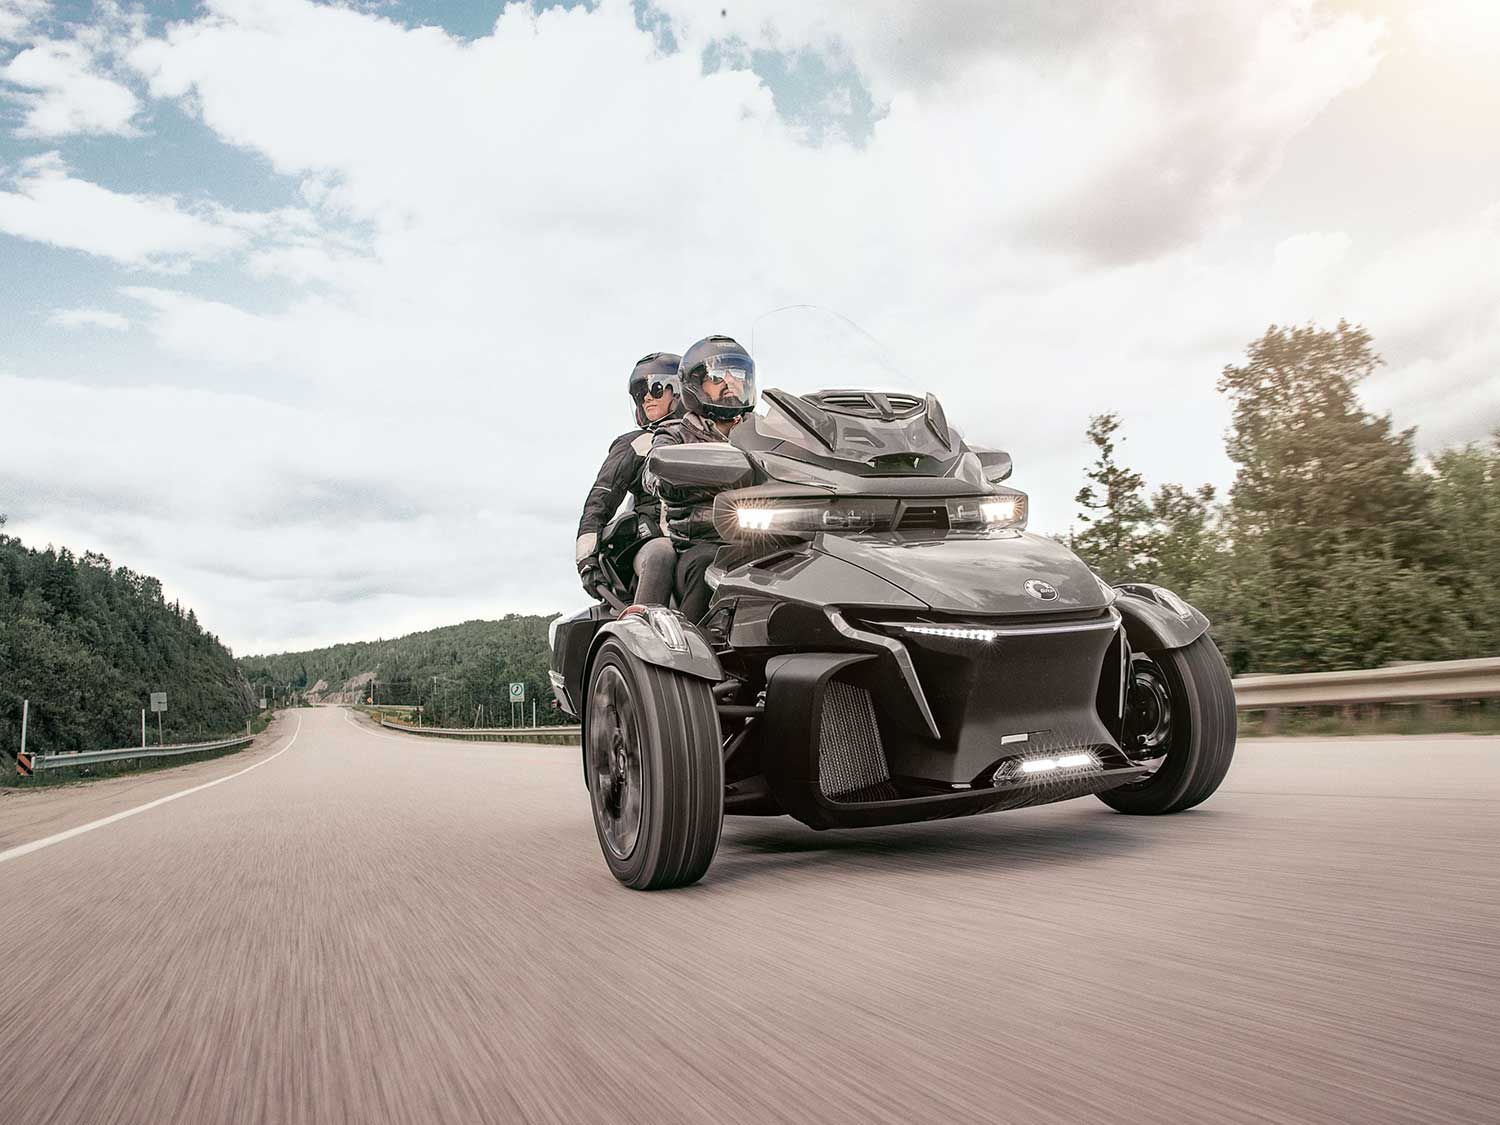 The 2020 Can-Am Spyder RT gets a host of creature comfort updates.